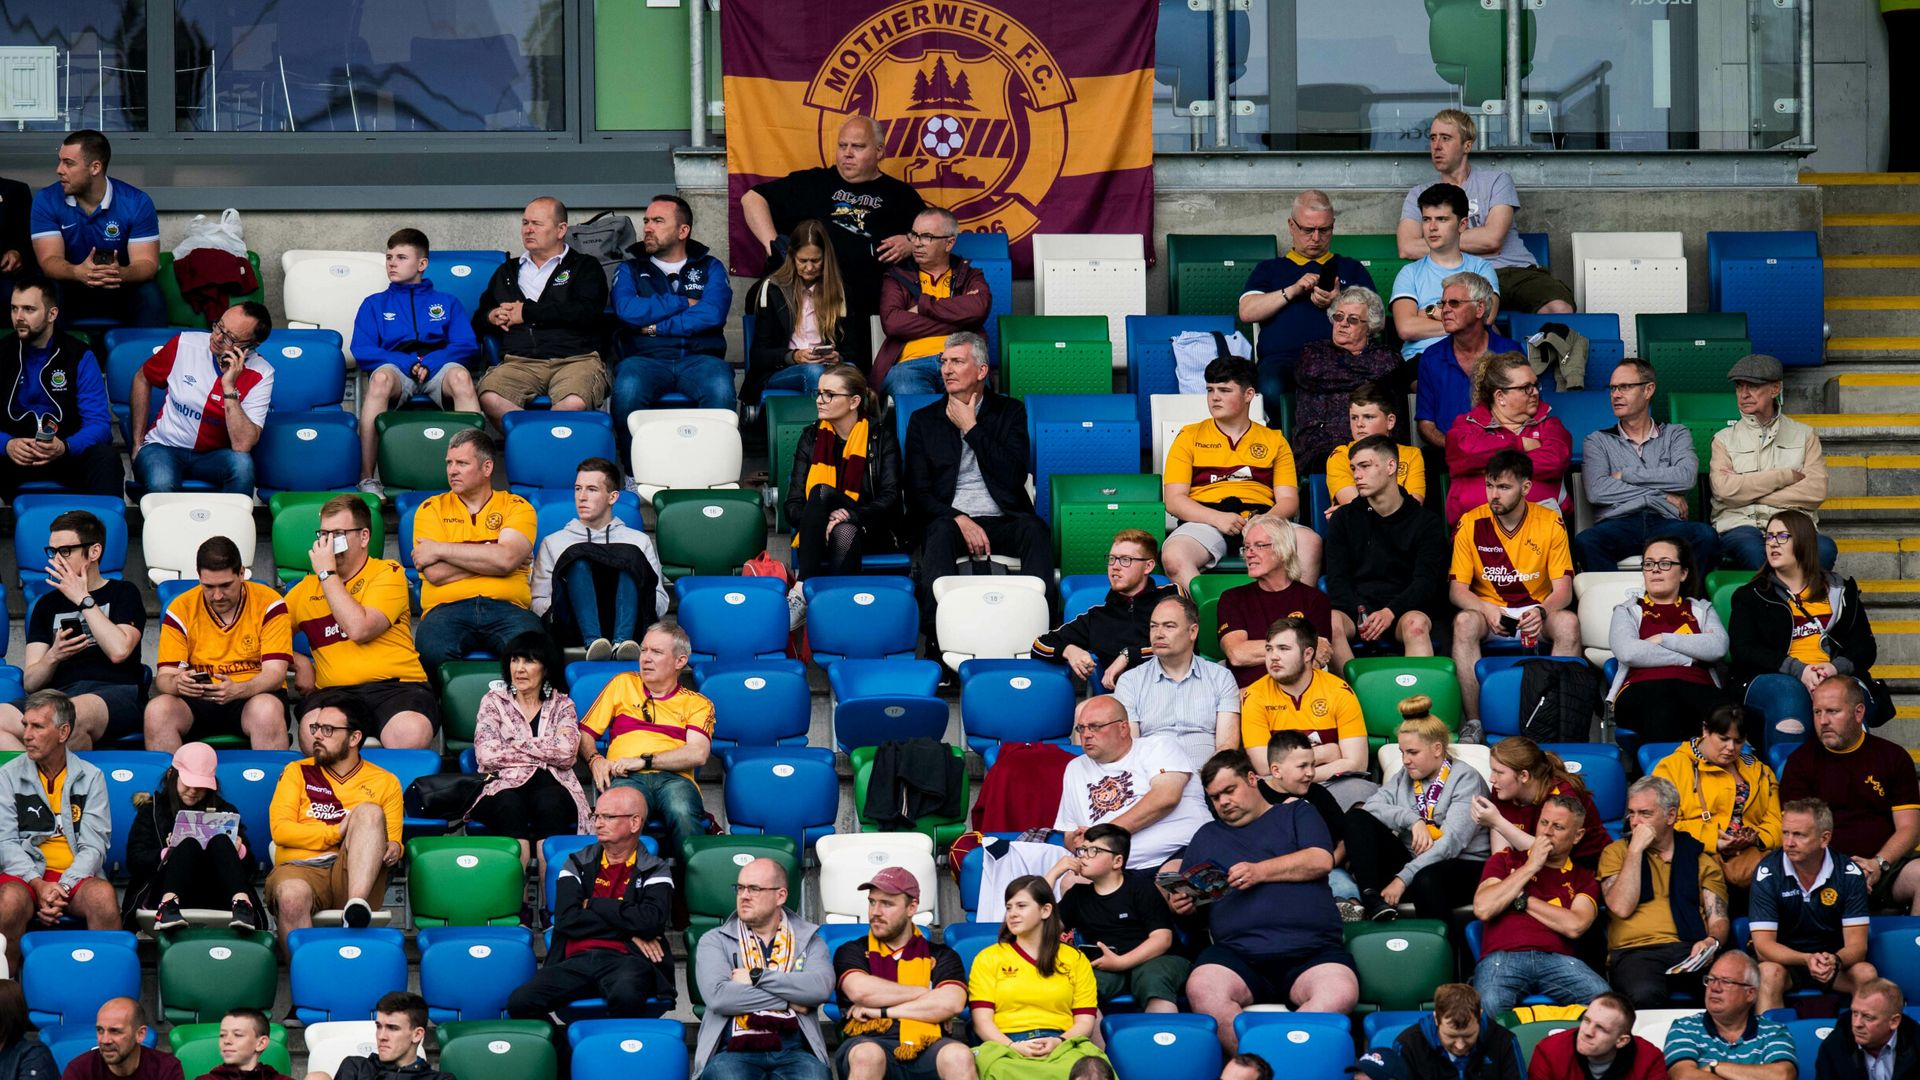 Motherwell reward fans with free season ticket renewal for 2021/22 campaign |